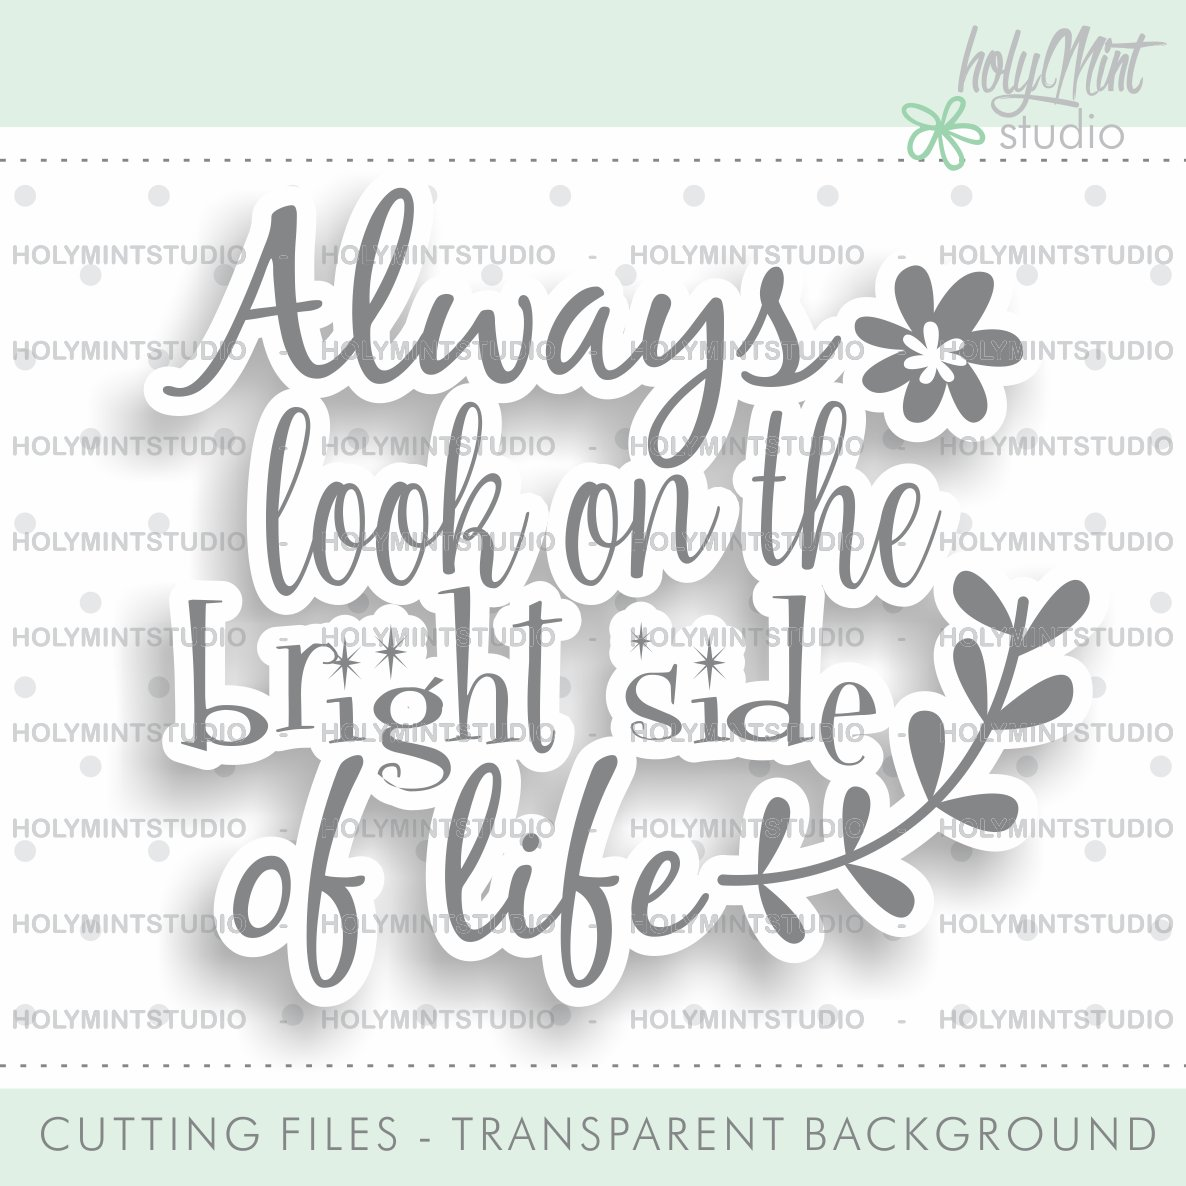 Always look on the bright side of life svg  http:// etsy.me/2v5rBYB  &nbsp;   vía @Etsy #GraphicDesign #Graphic #planneraddict #planner #scrapbooking<br>http://pic.twitter.com/ZBRhdhX8SX